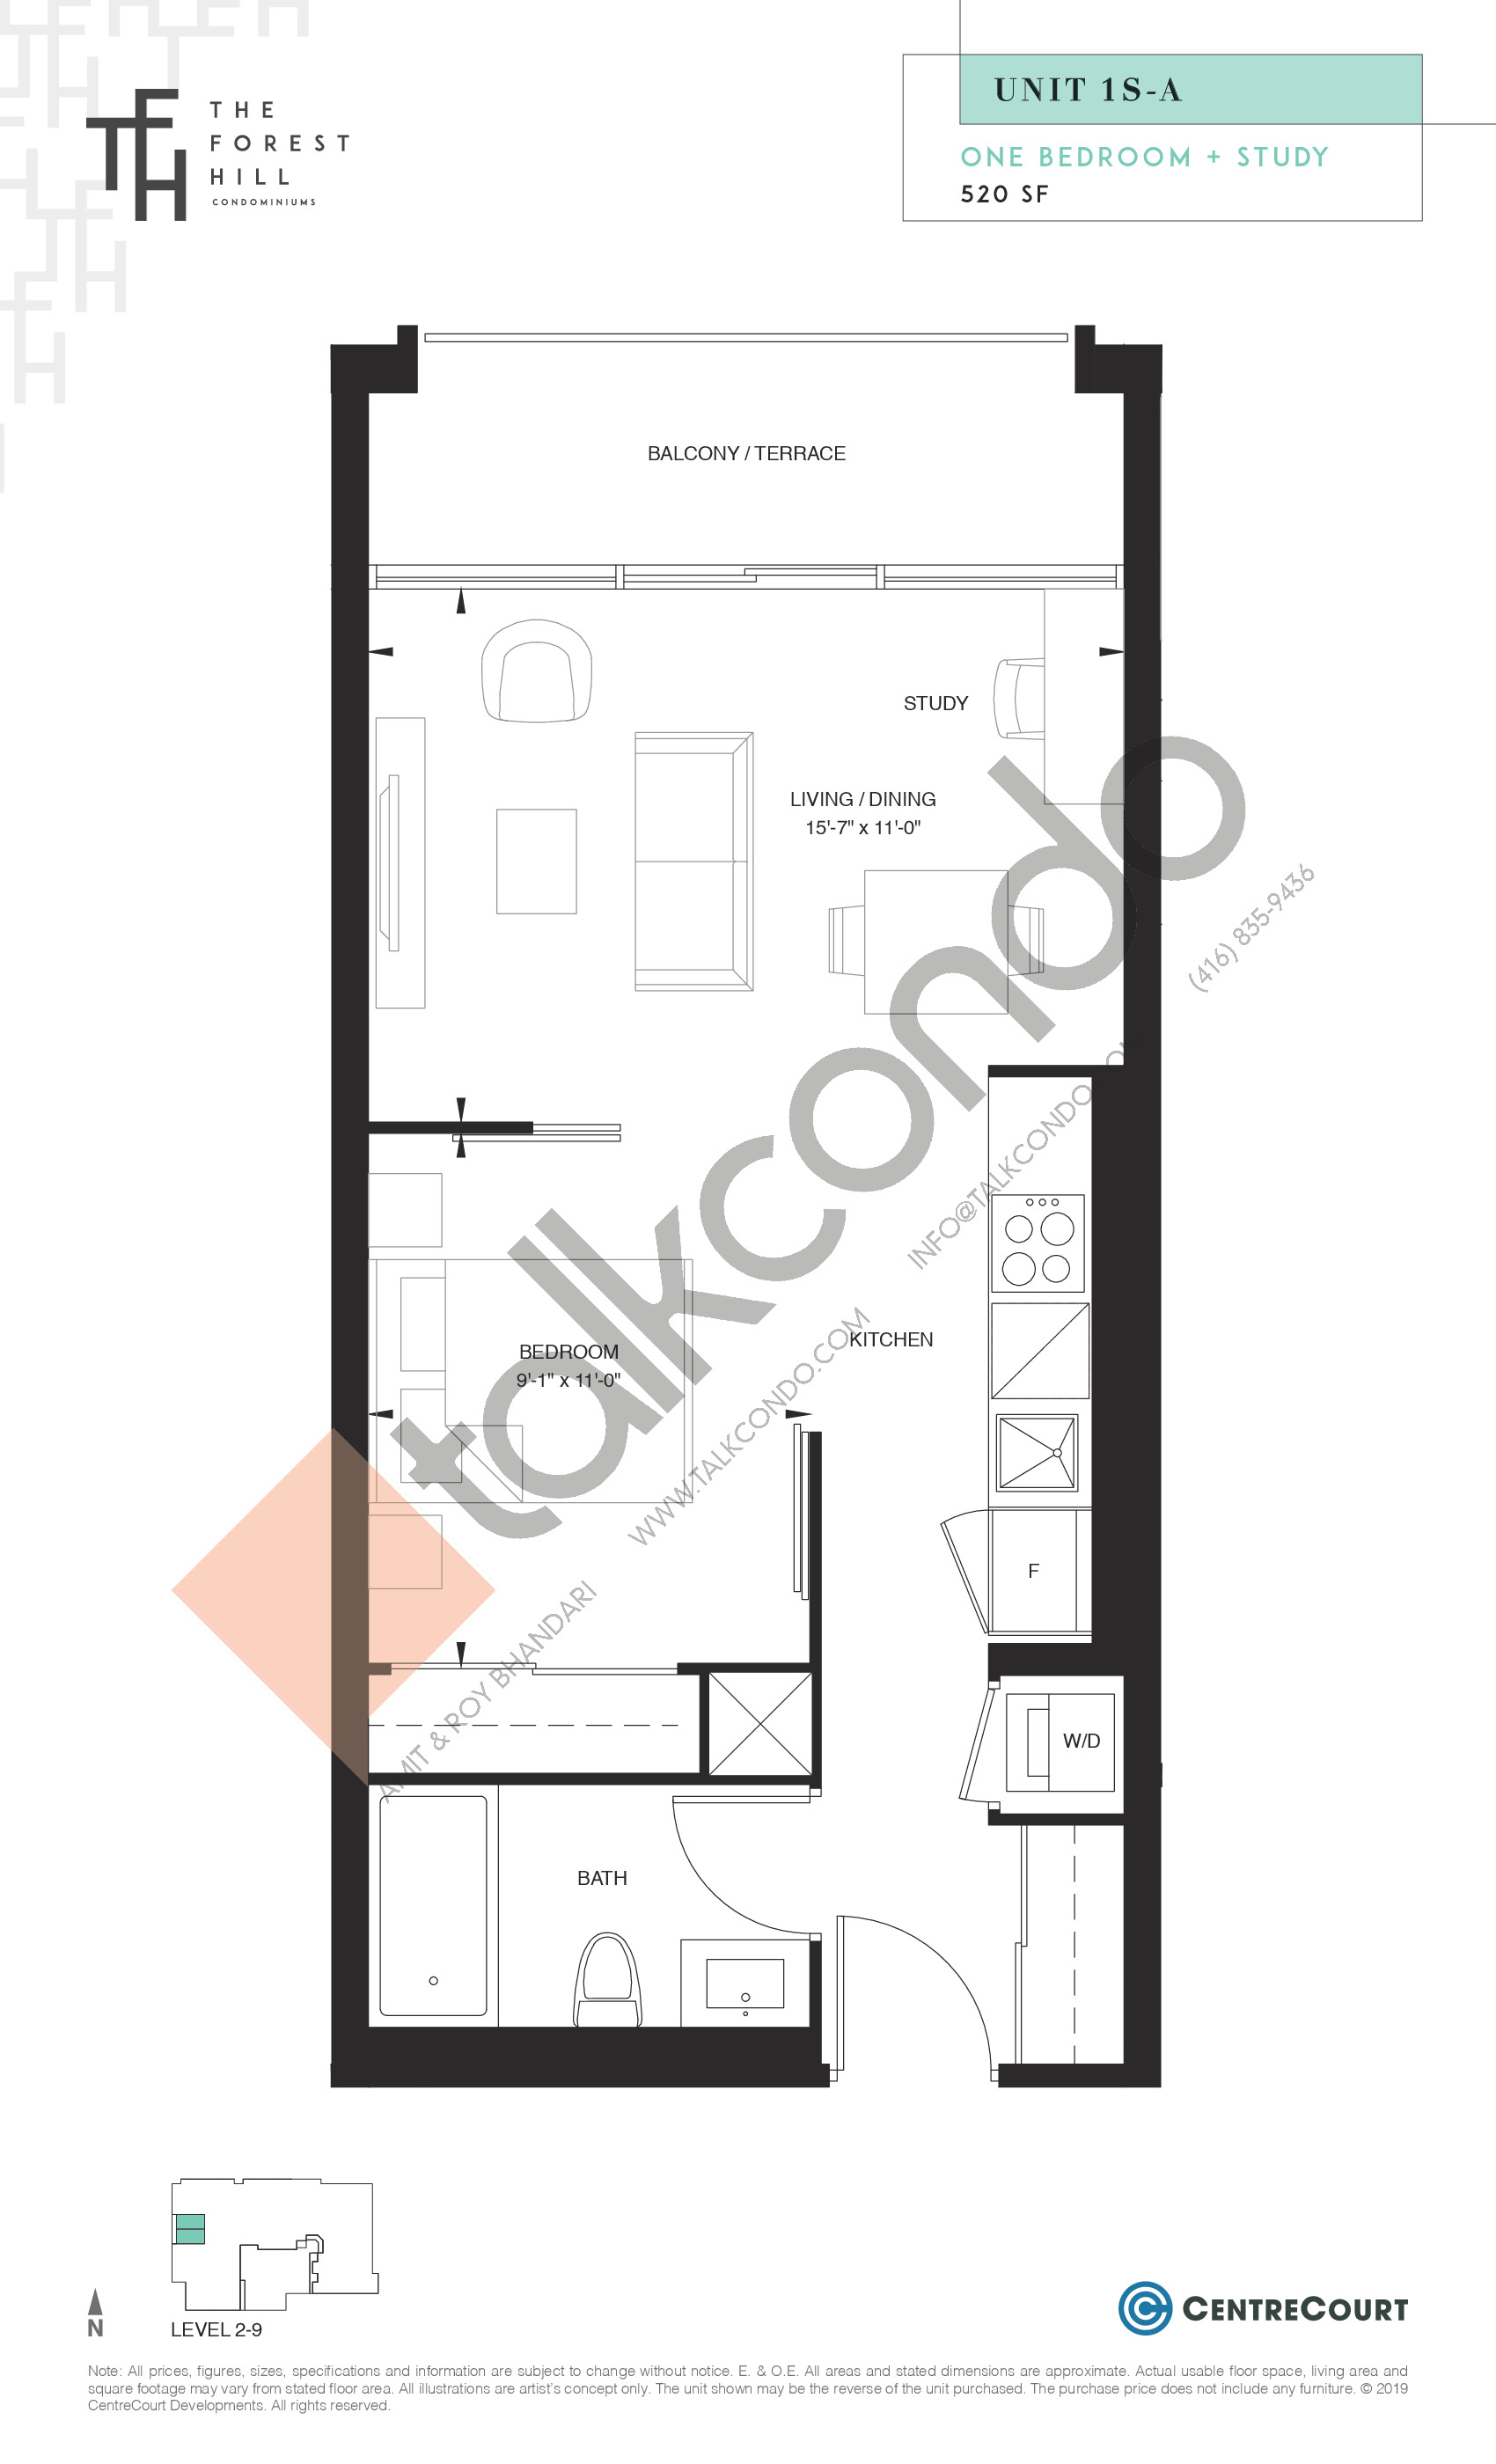 Unit 1S-A Floor Plan at The Forest Hill Condos - 520 sq.ft